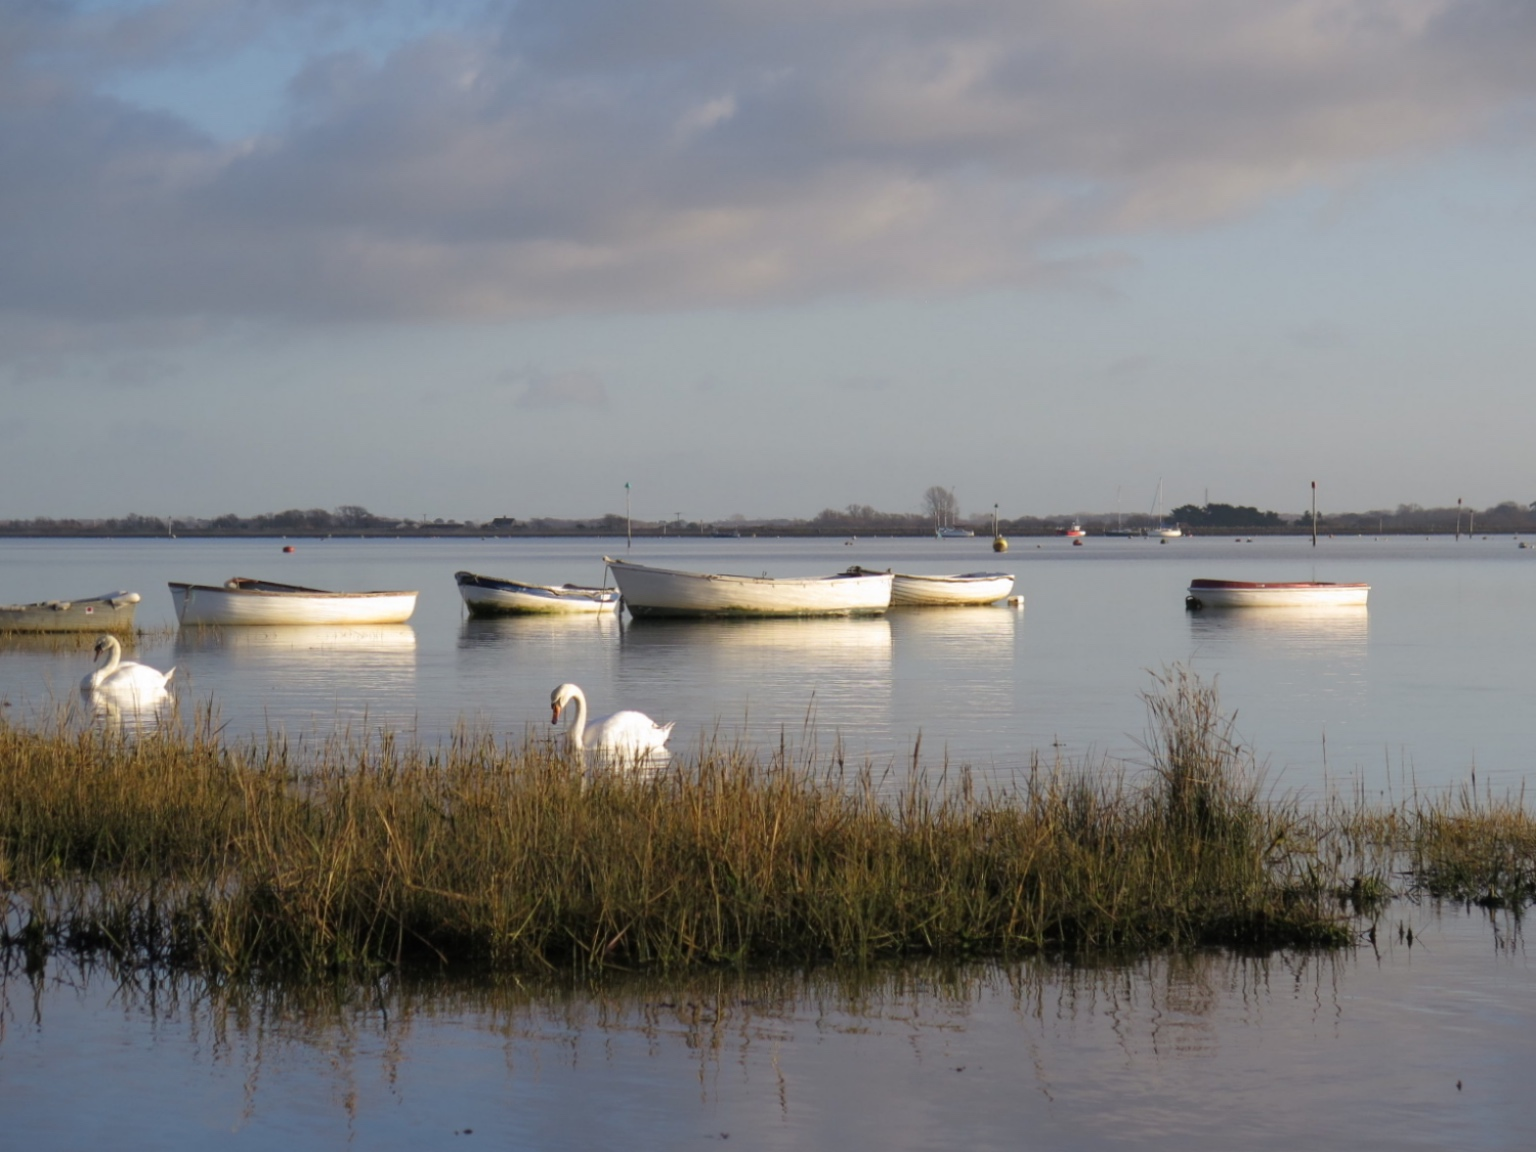 Swans at Emsworth Harbour – 02/17